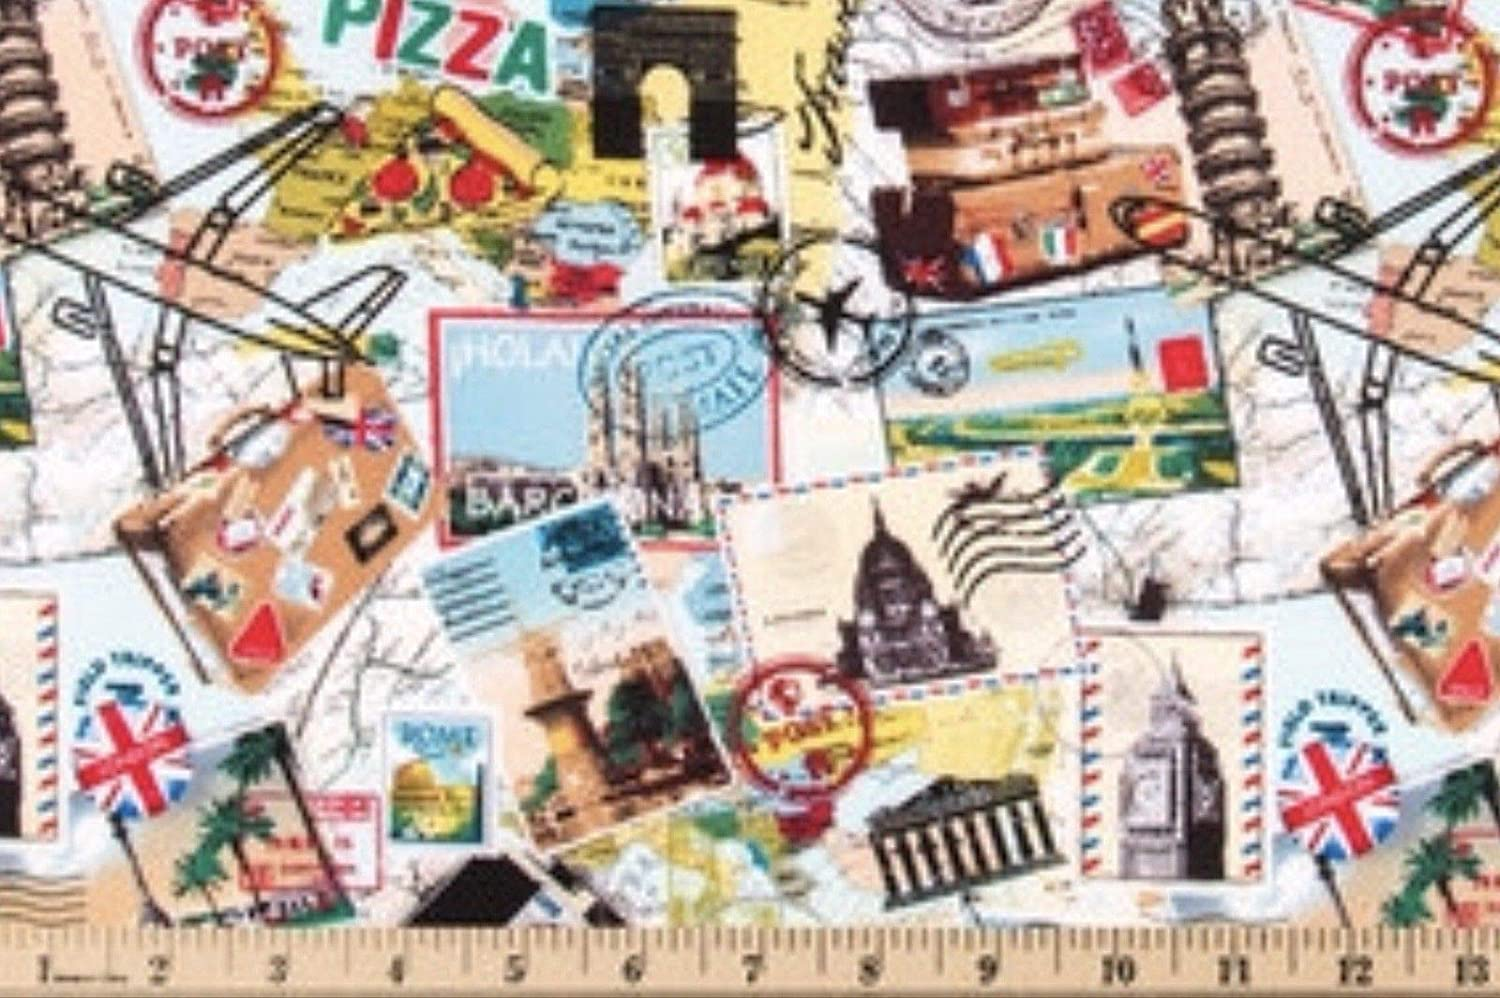 Amazon Com Travel Vacation Collage Cotton Quilting Fabric By The Half Yard 44 Wide X 18 Long Handmade